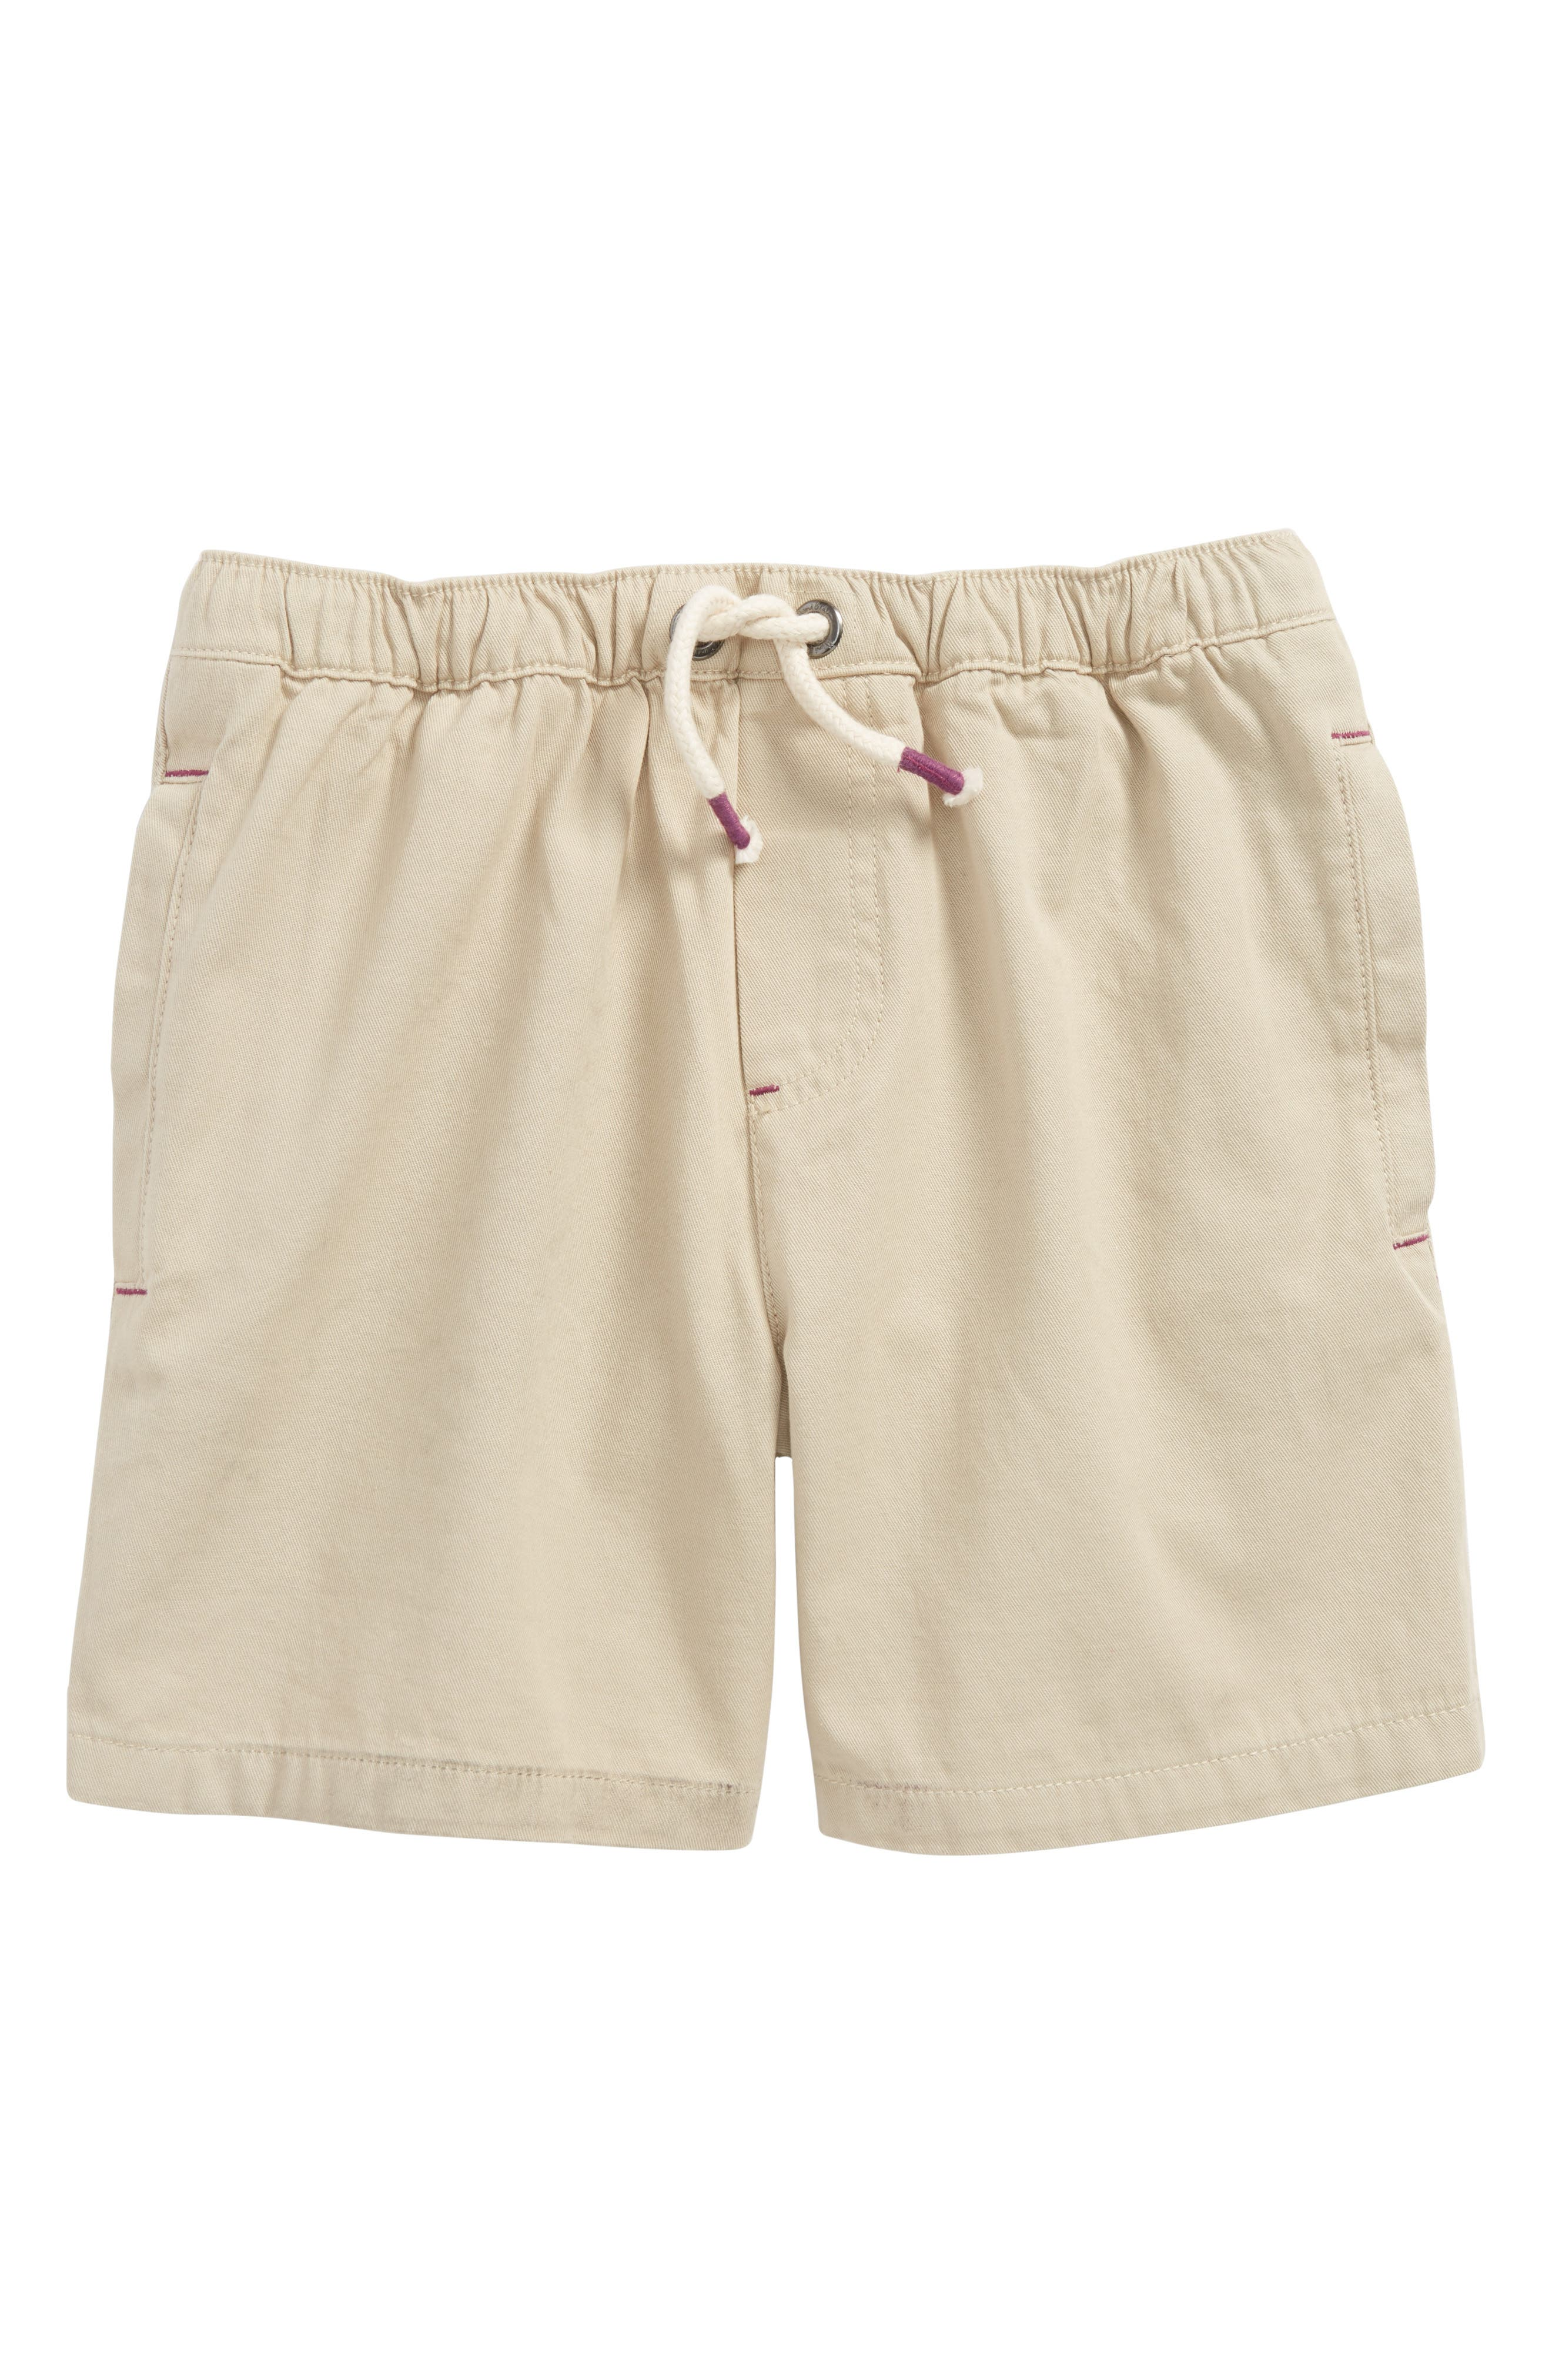 Drawstring Shorts,                             Main thumbnail 1, color,                             250